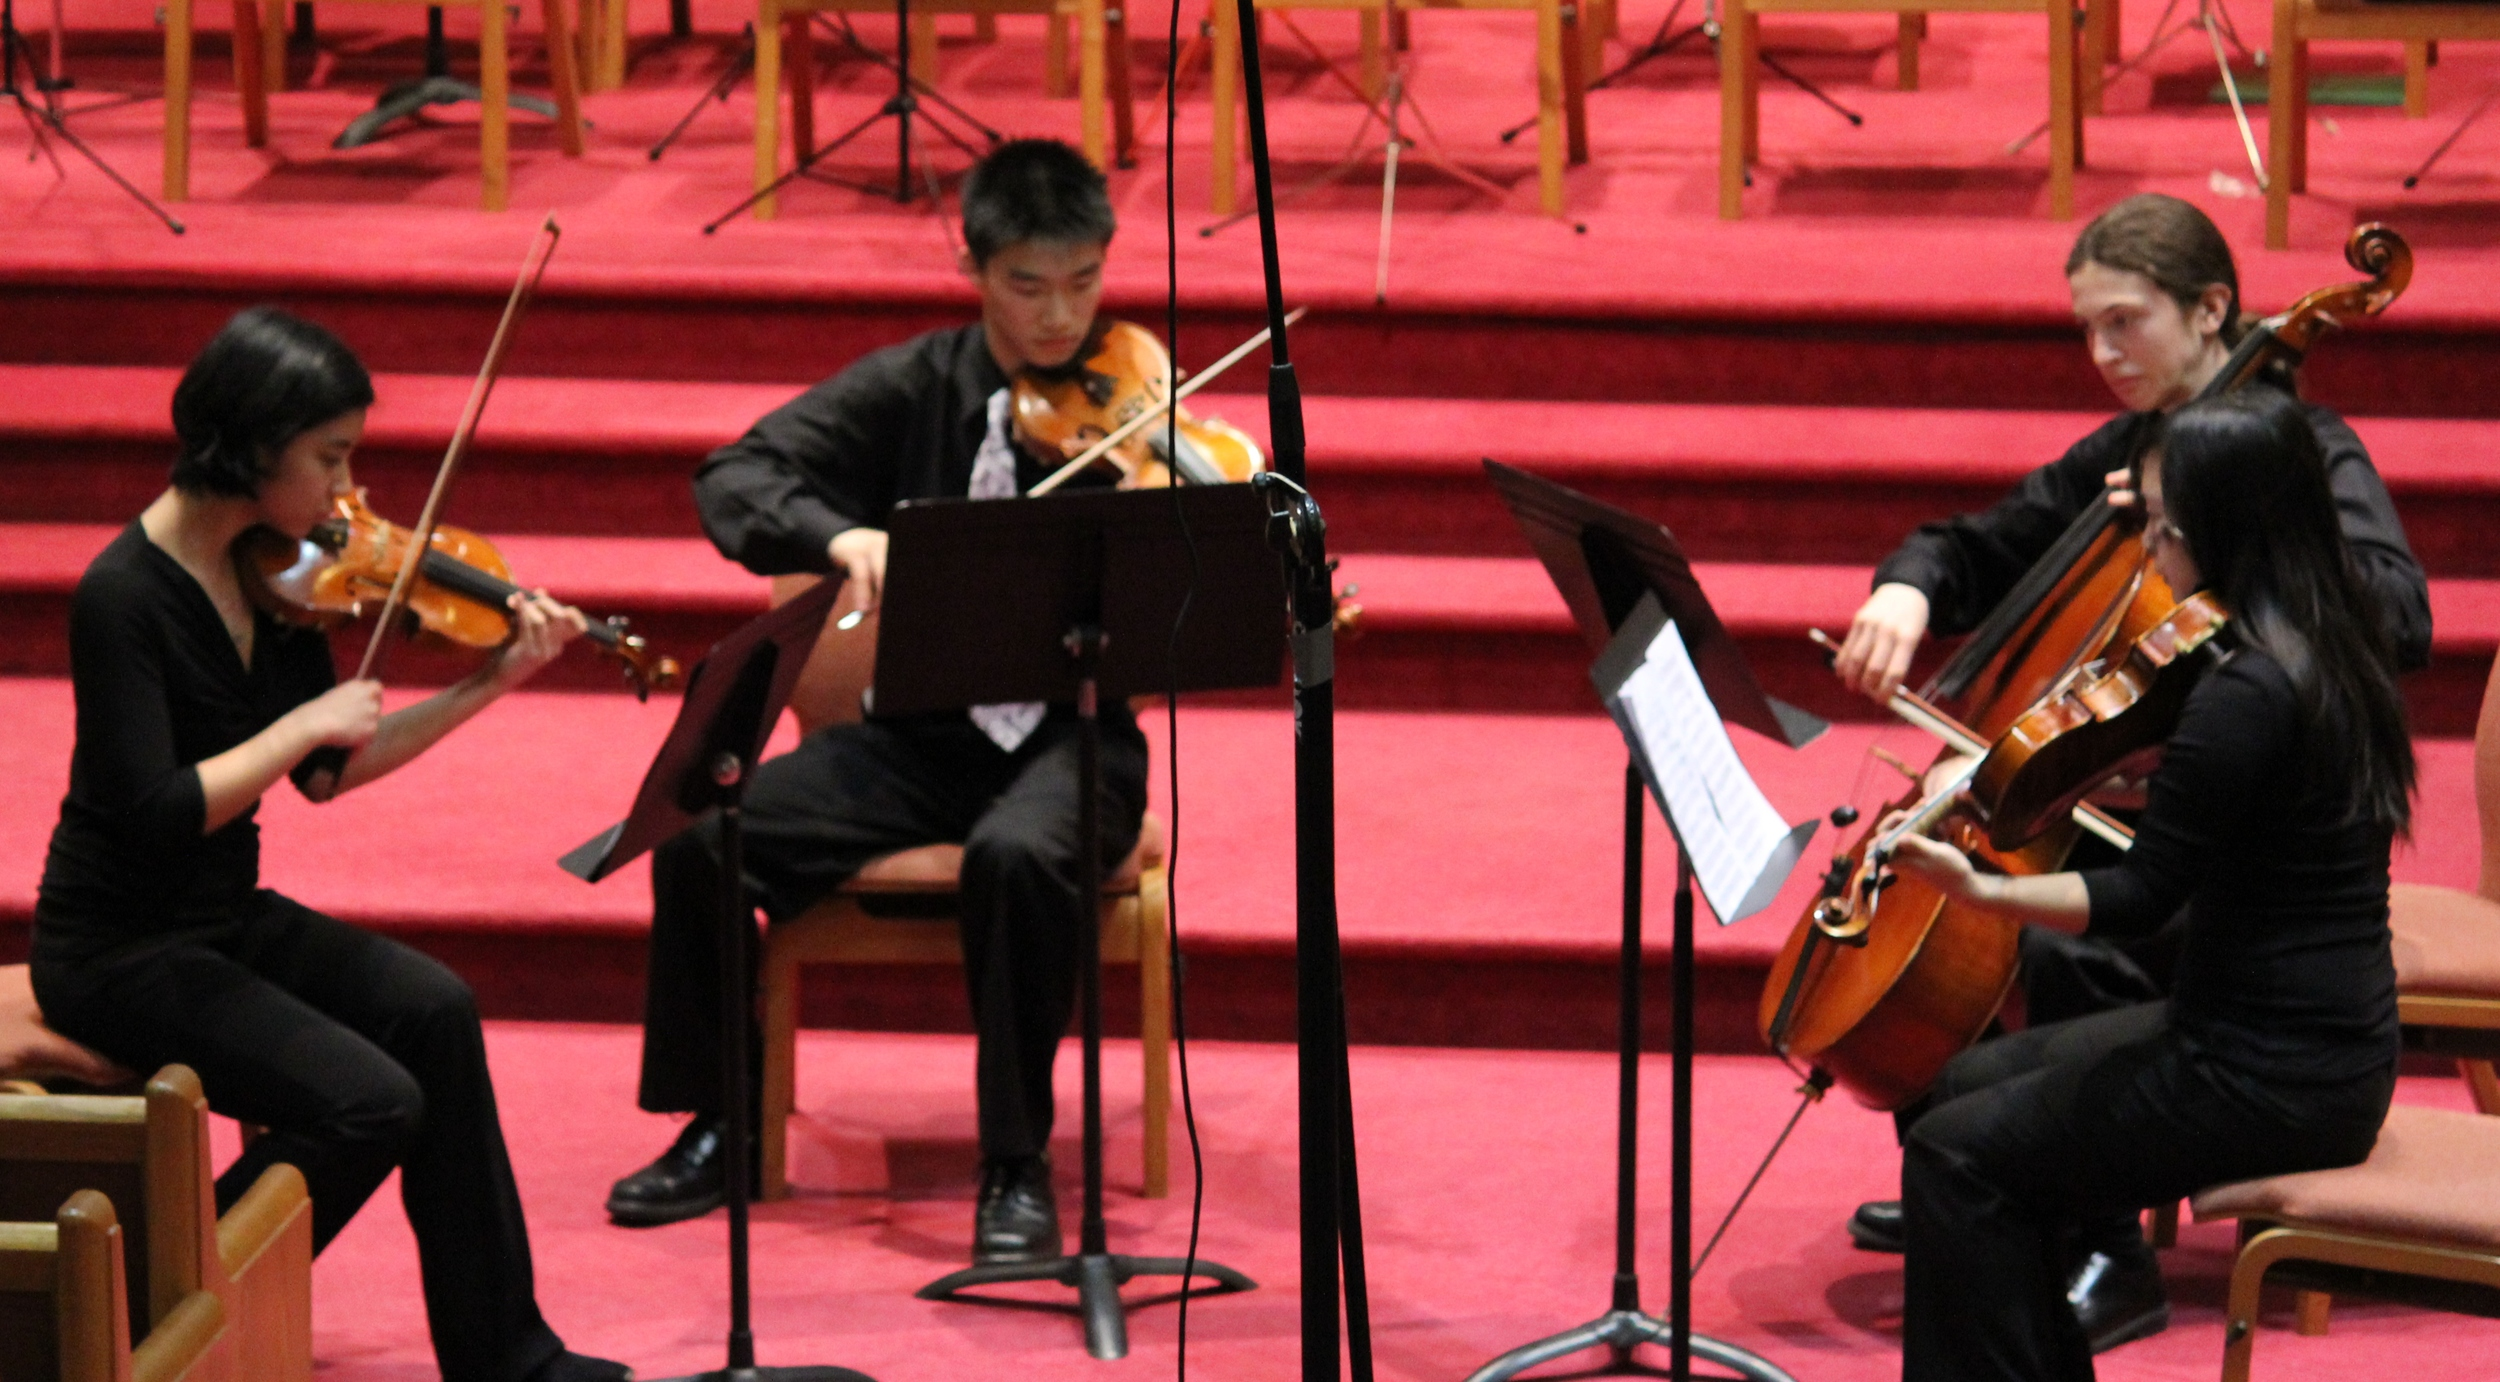 Our four string principals perform Schubert's Death and the Maiden string quartet